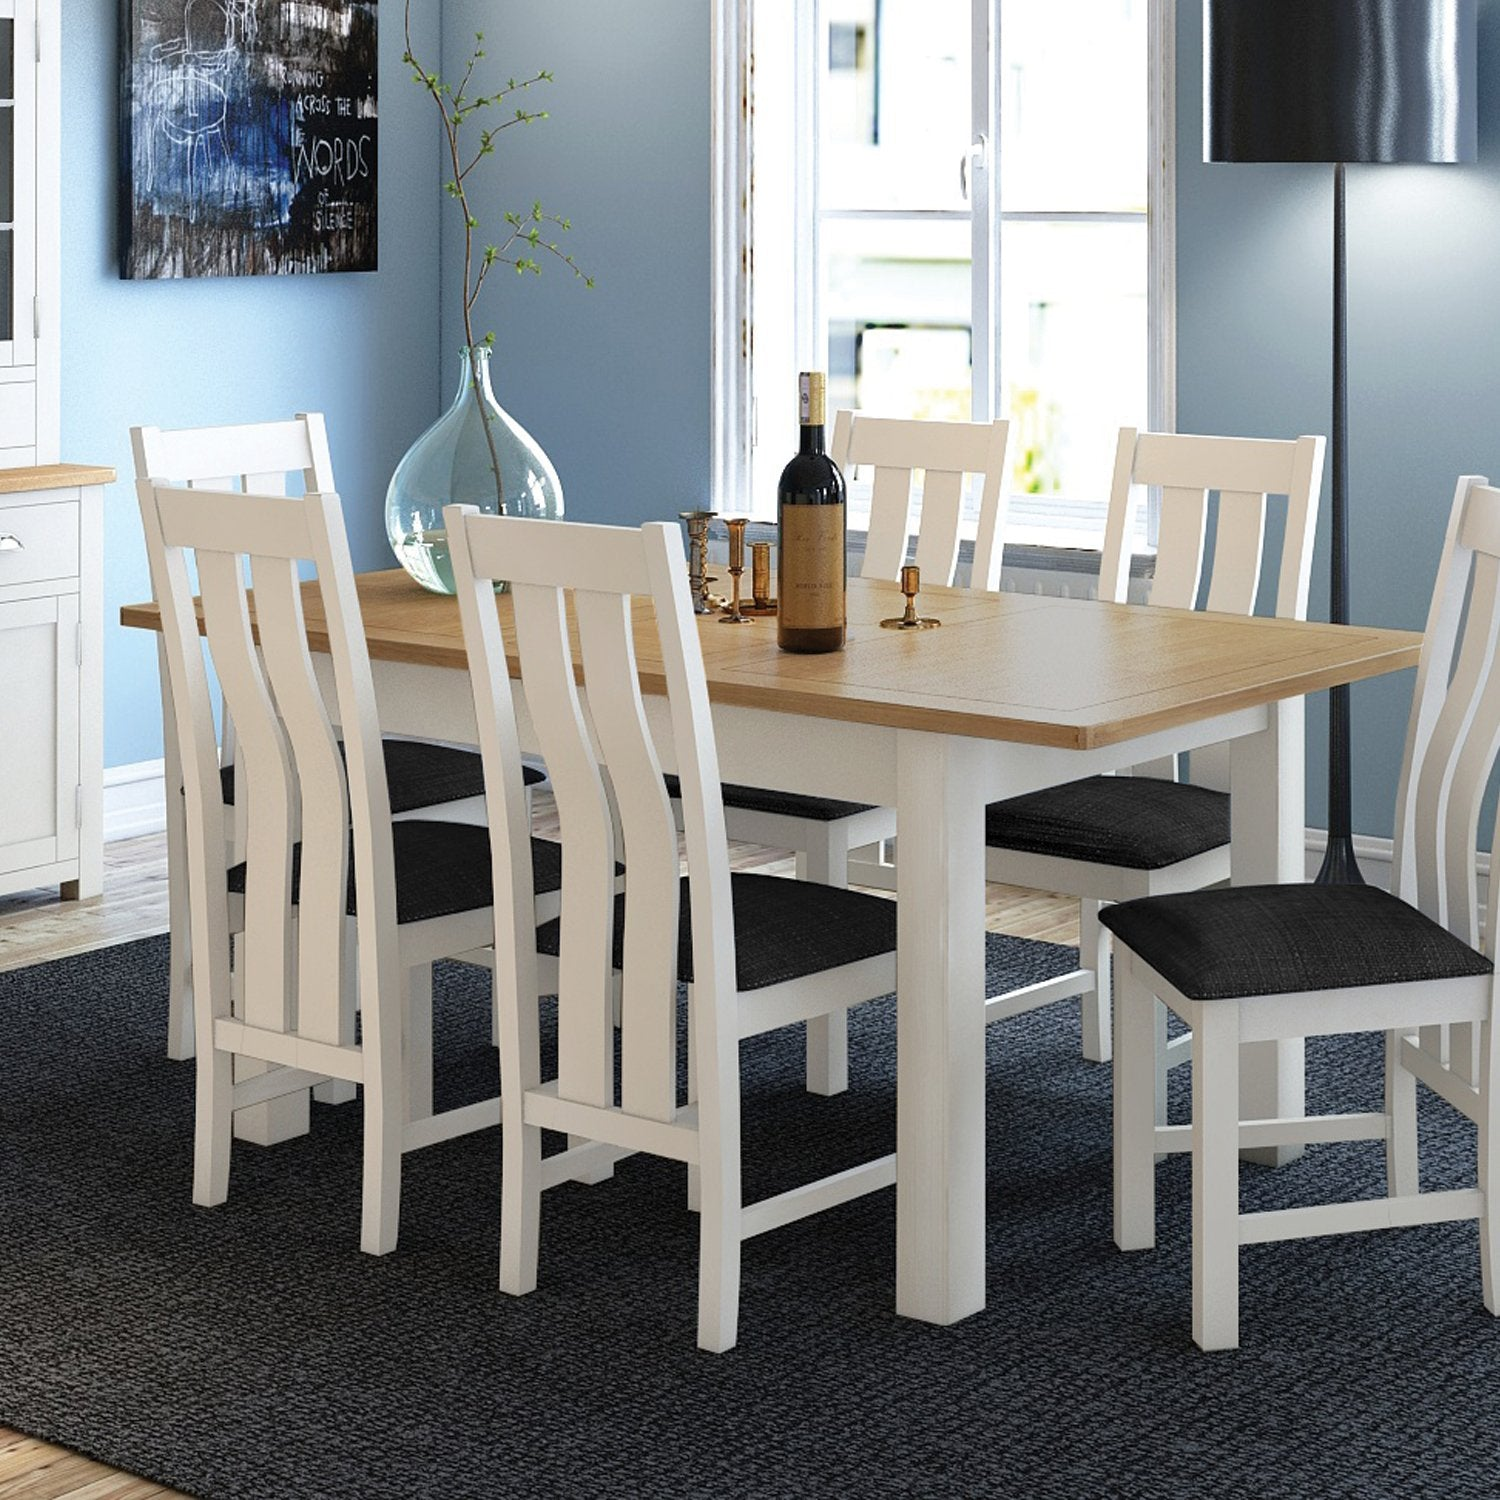 Superb Portland Oak Painted Dining Table 6 Chairs Package Beutiful Home Inspiration Xortanetmahrainfo